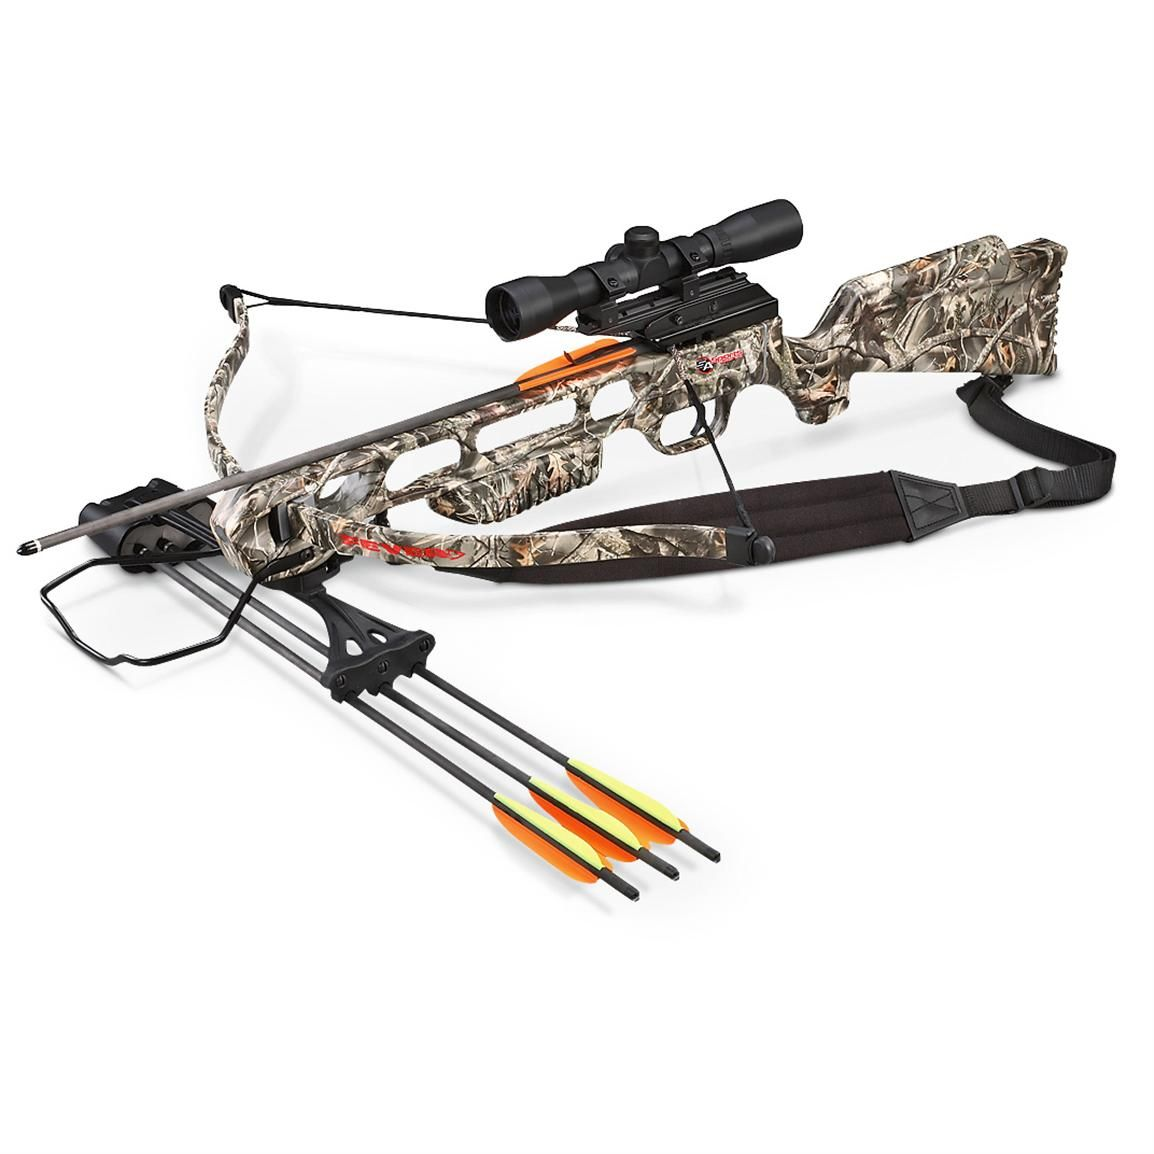 Camo crossbow. Crossbow package, Crossbow, Bow hunting gear